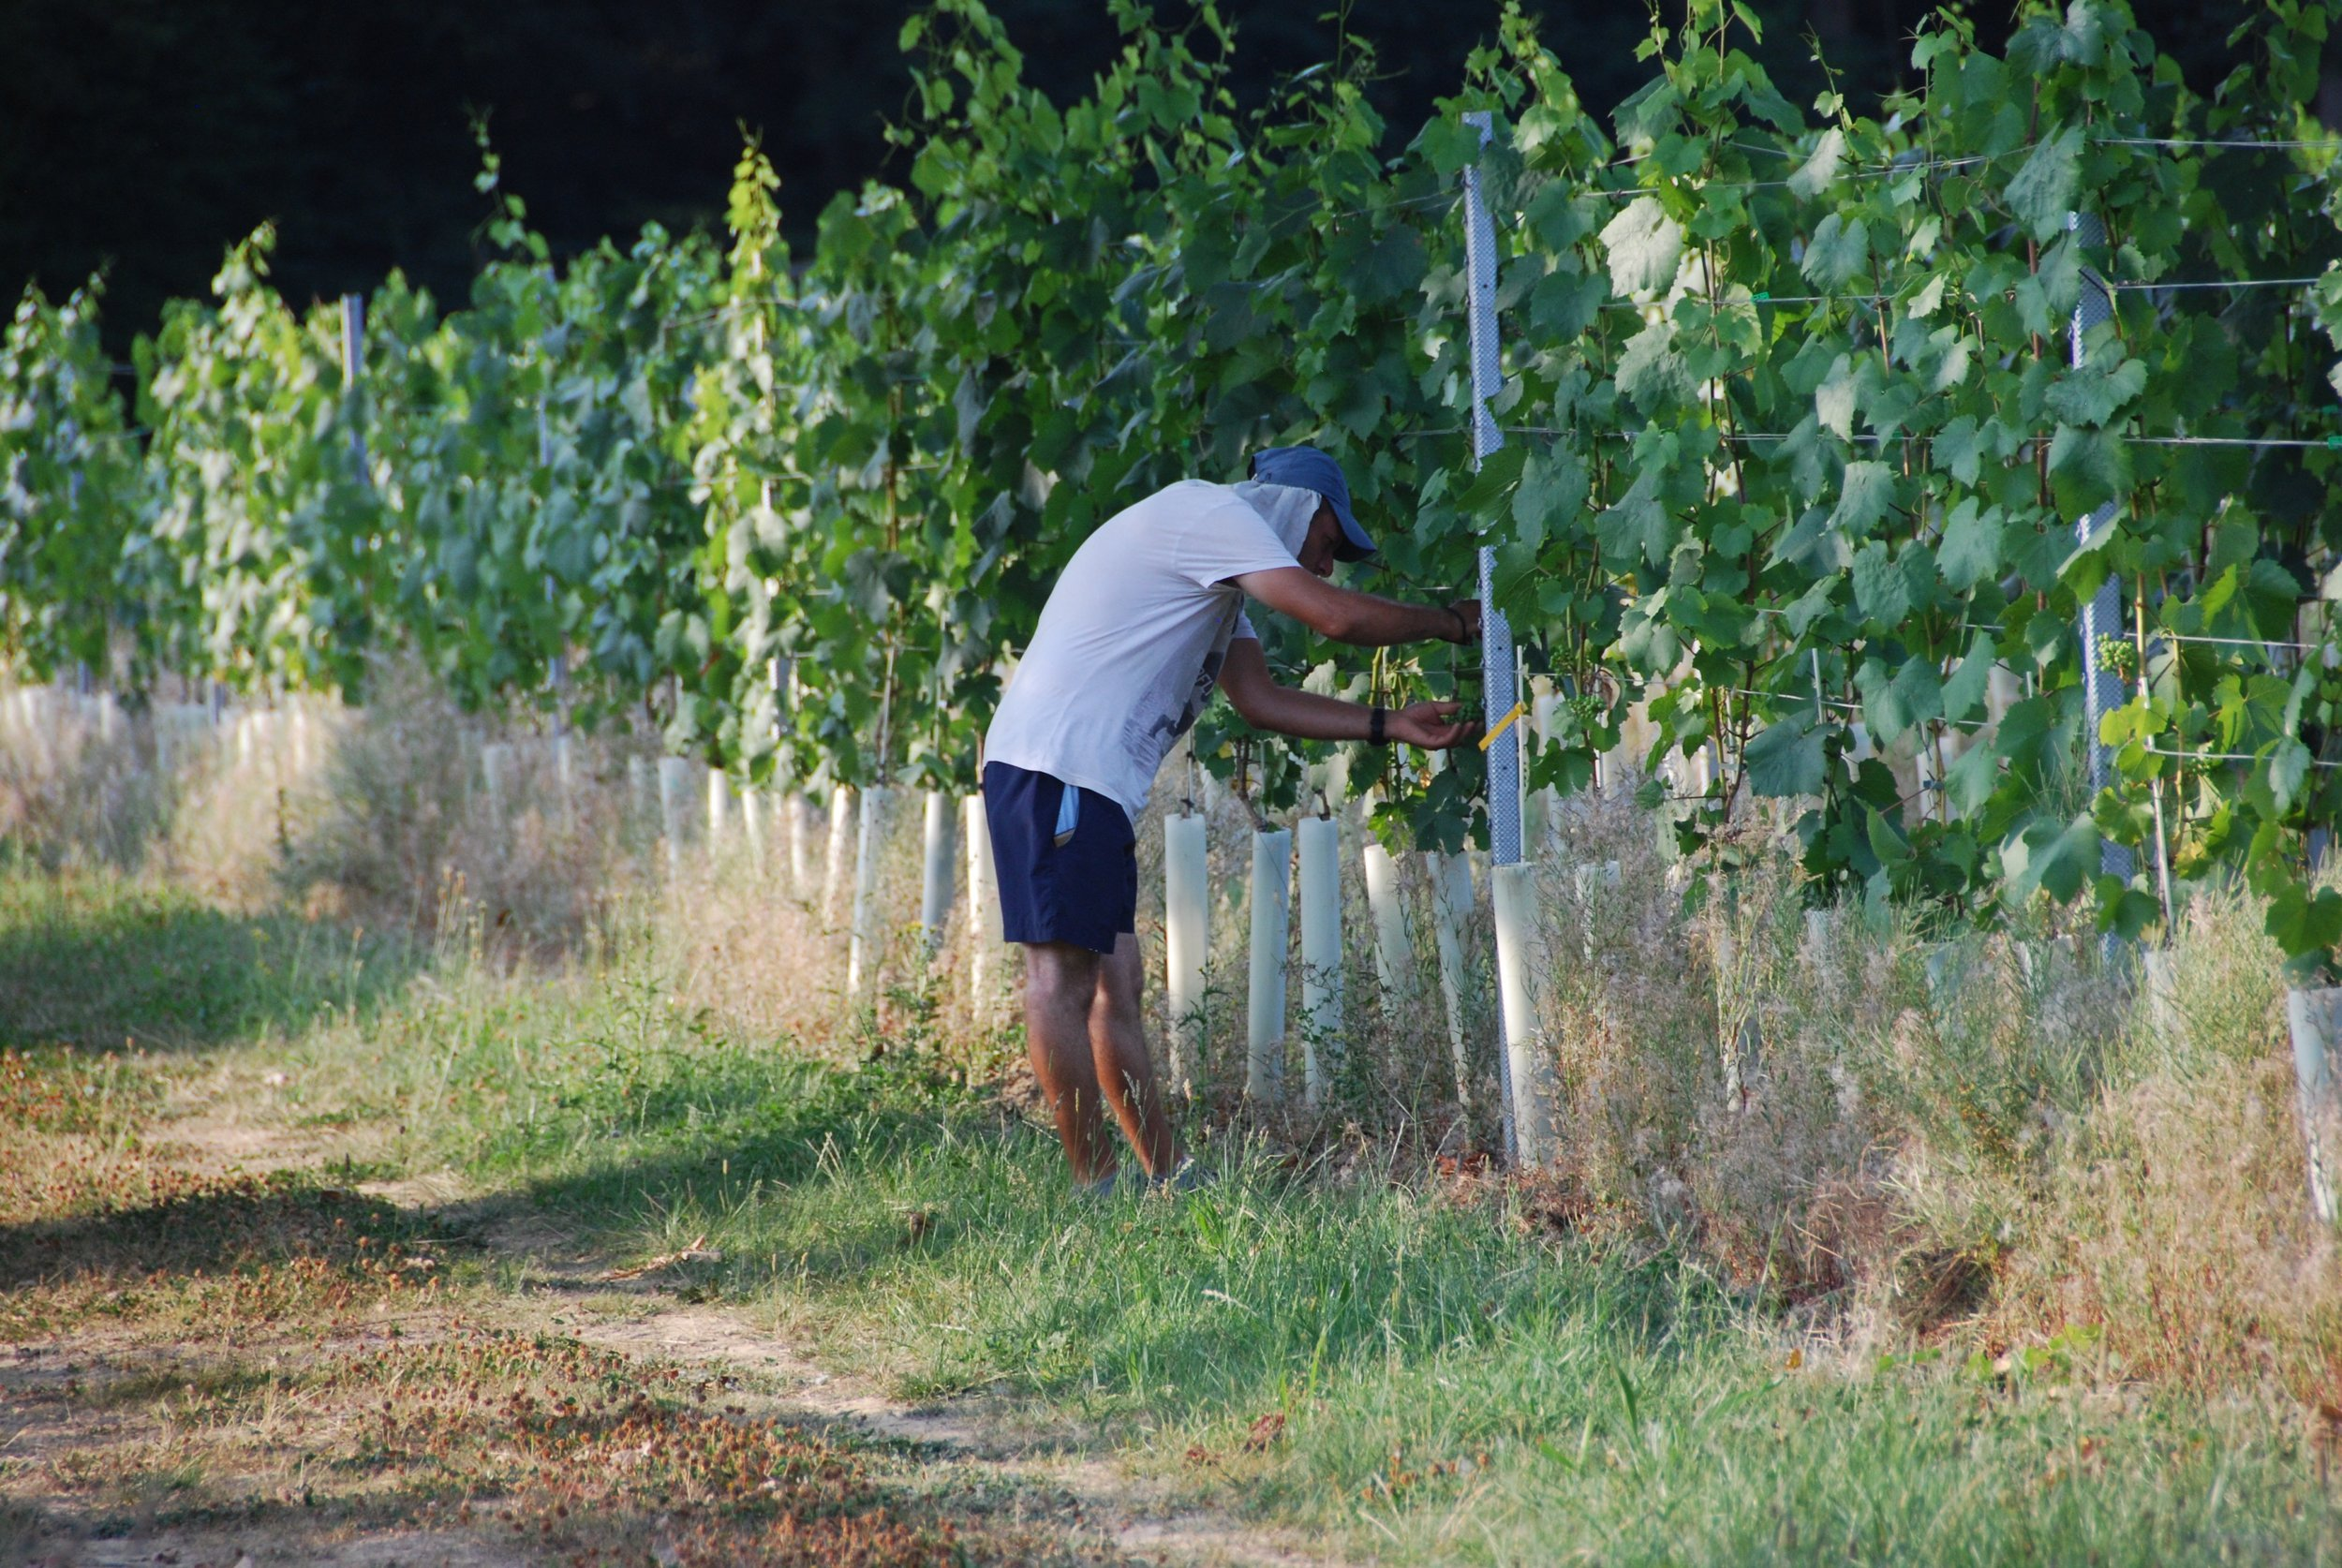 The Vineworks team have been in to help us with some necessary green harvesting.